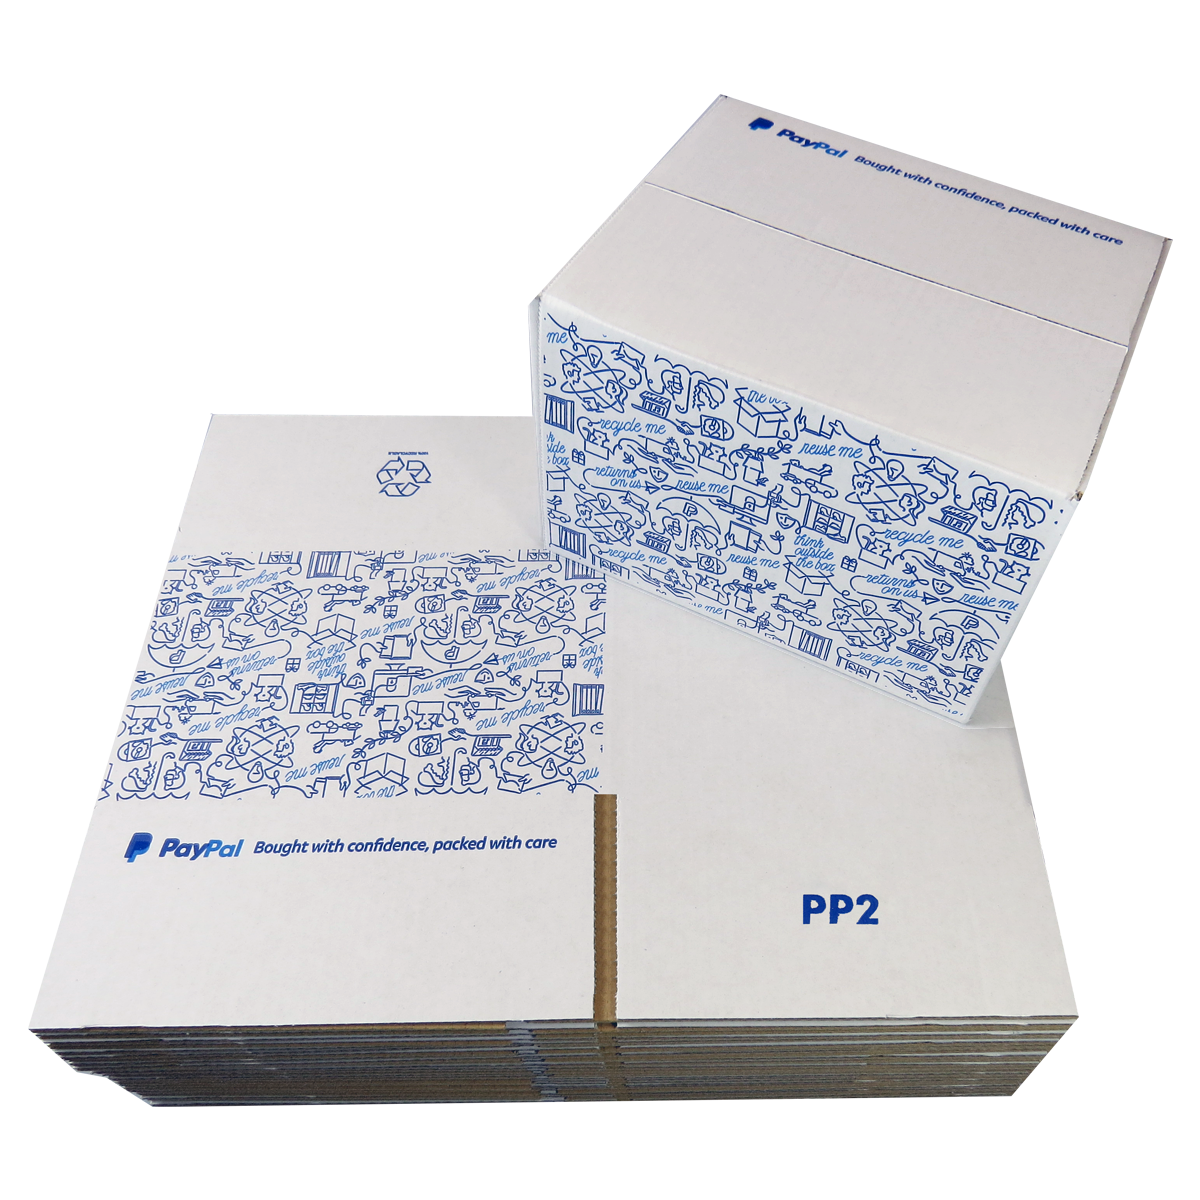 50 x PP2 PayPal Branded Quality White Single Wall Cardboard Postal Mailing Boxes 215x180x135mm